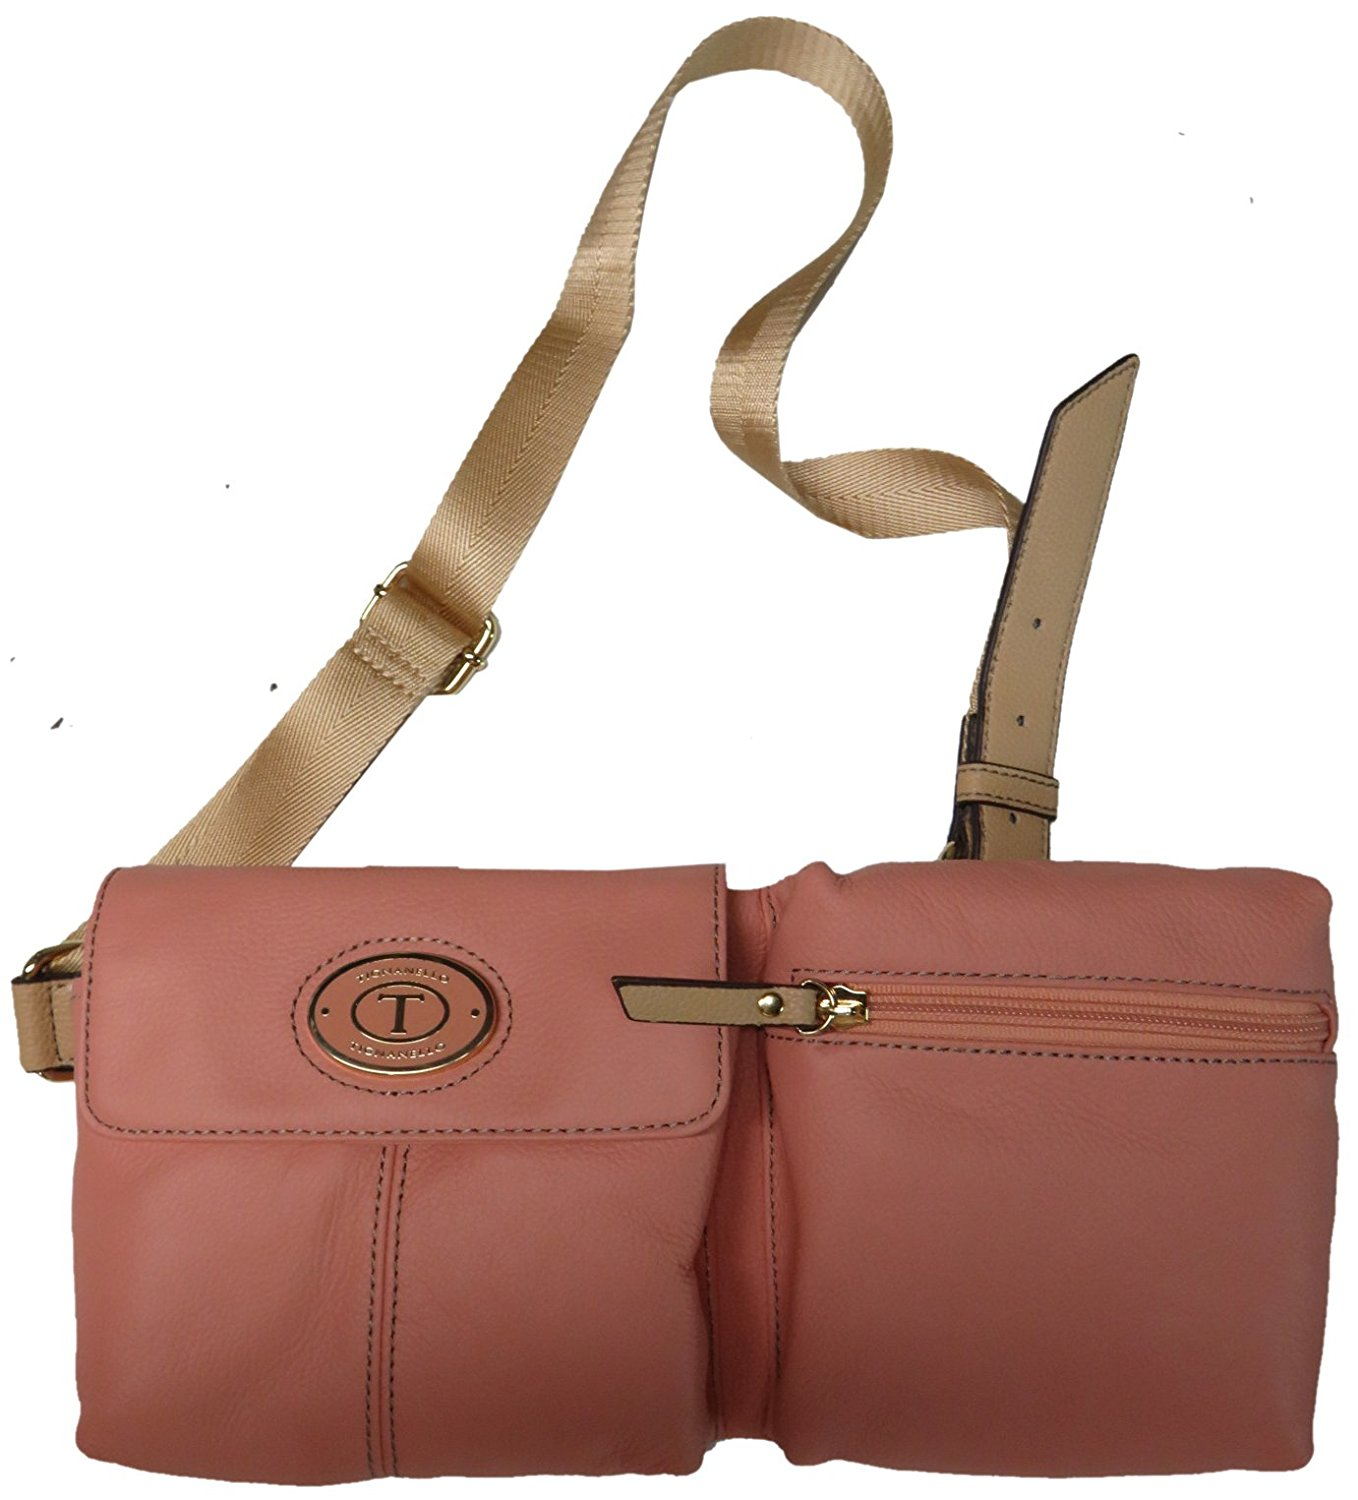 bc30bce60 Get Quotations · Tignanello Leather All Day Long Belt Bag Crossbody Peach